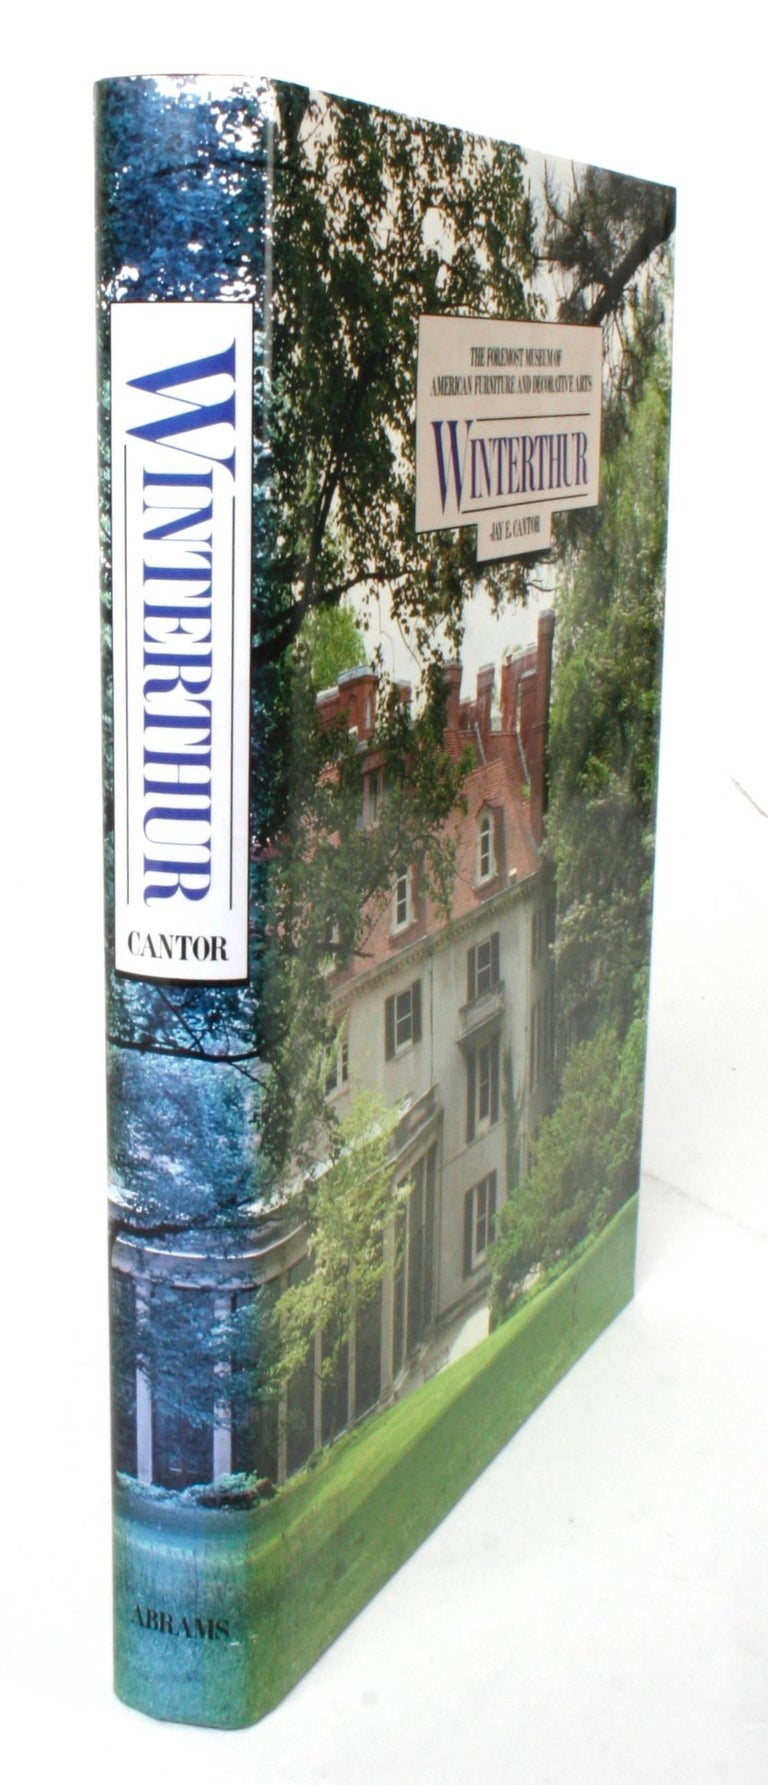 Winterthur by Jay E. Cantor, First Edition 13